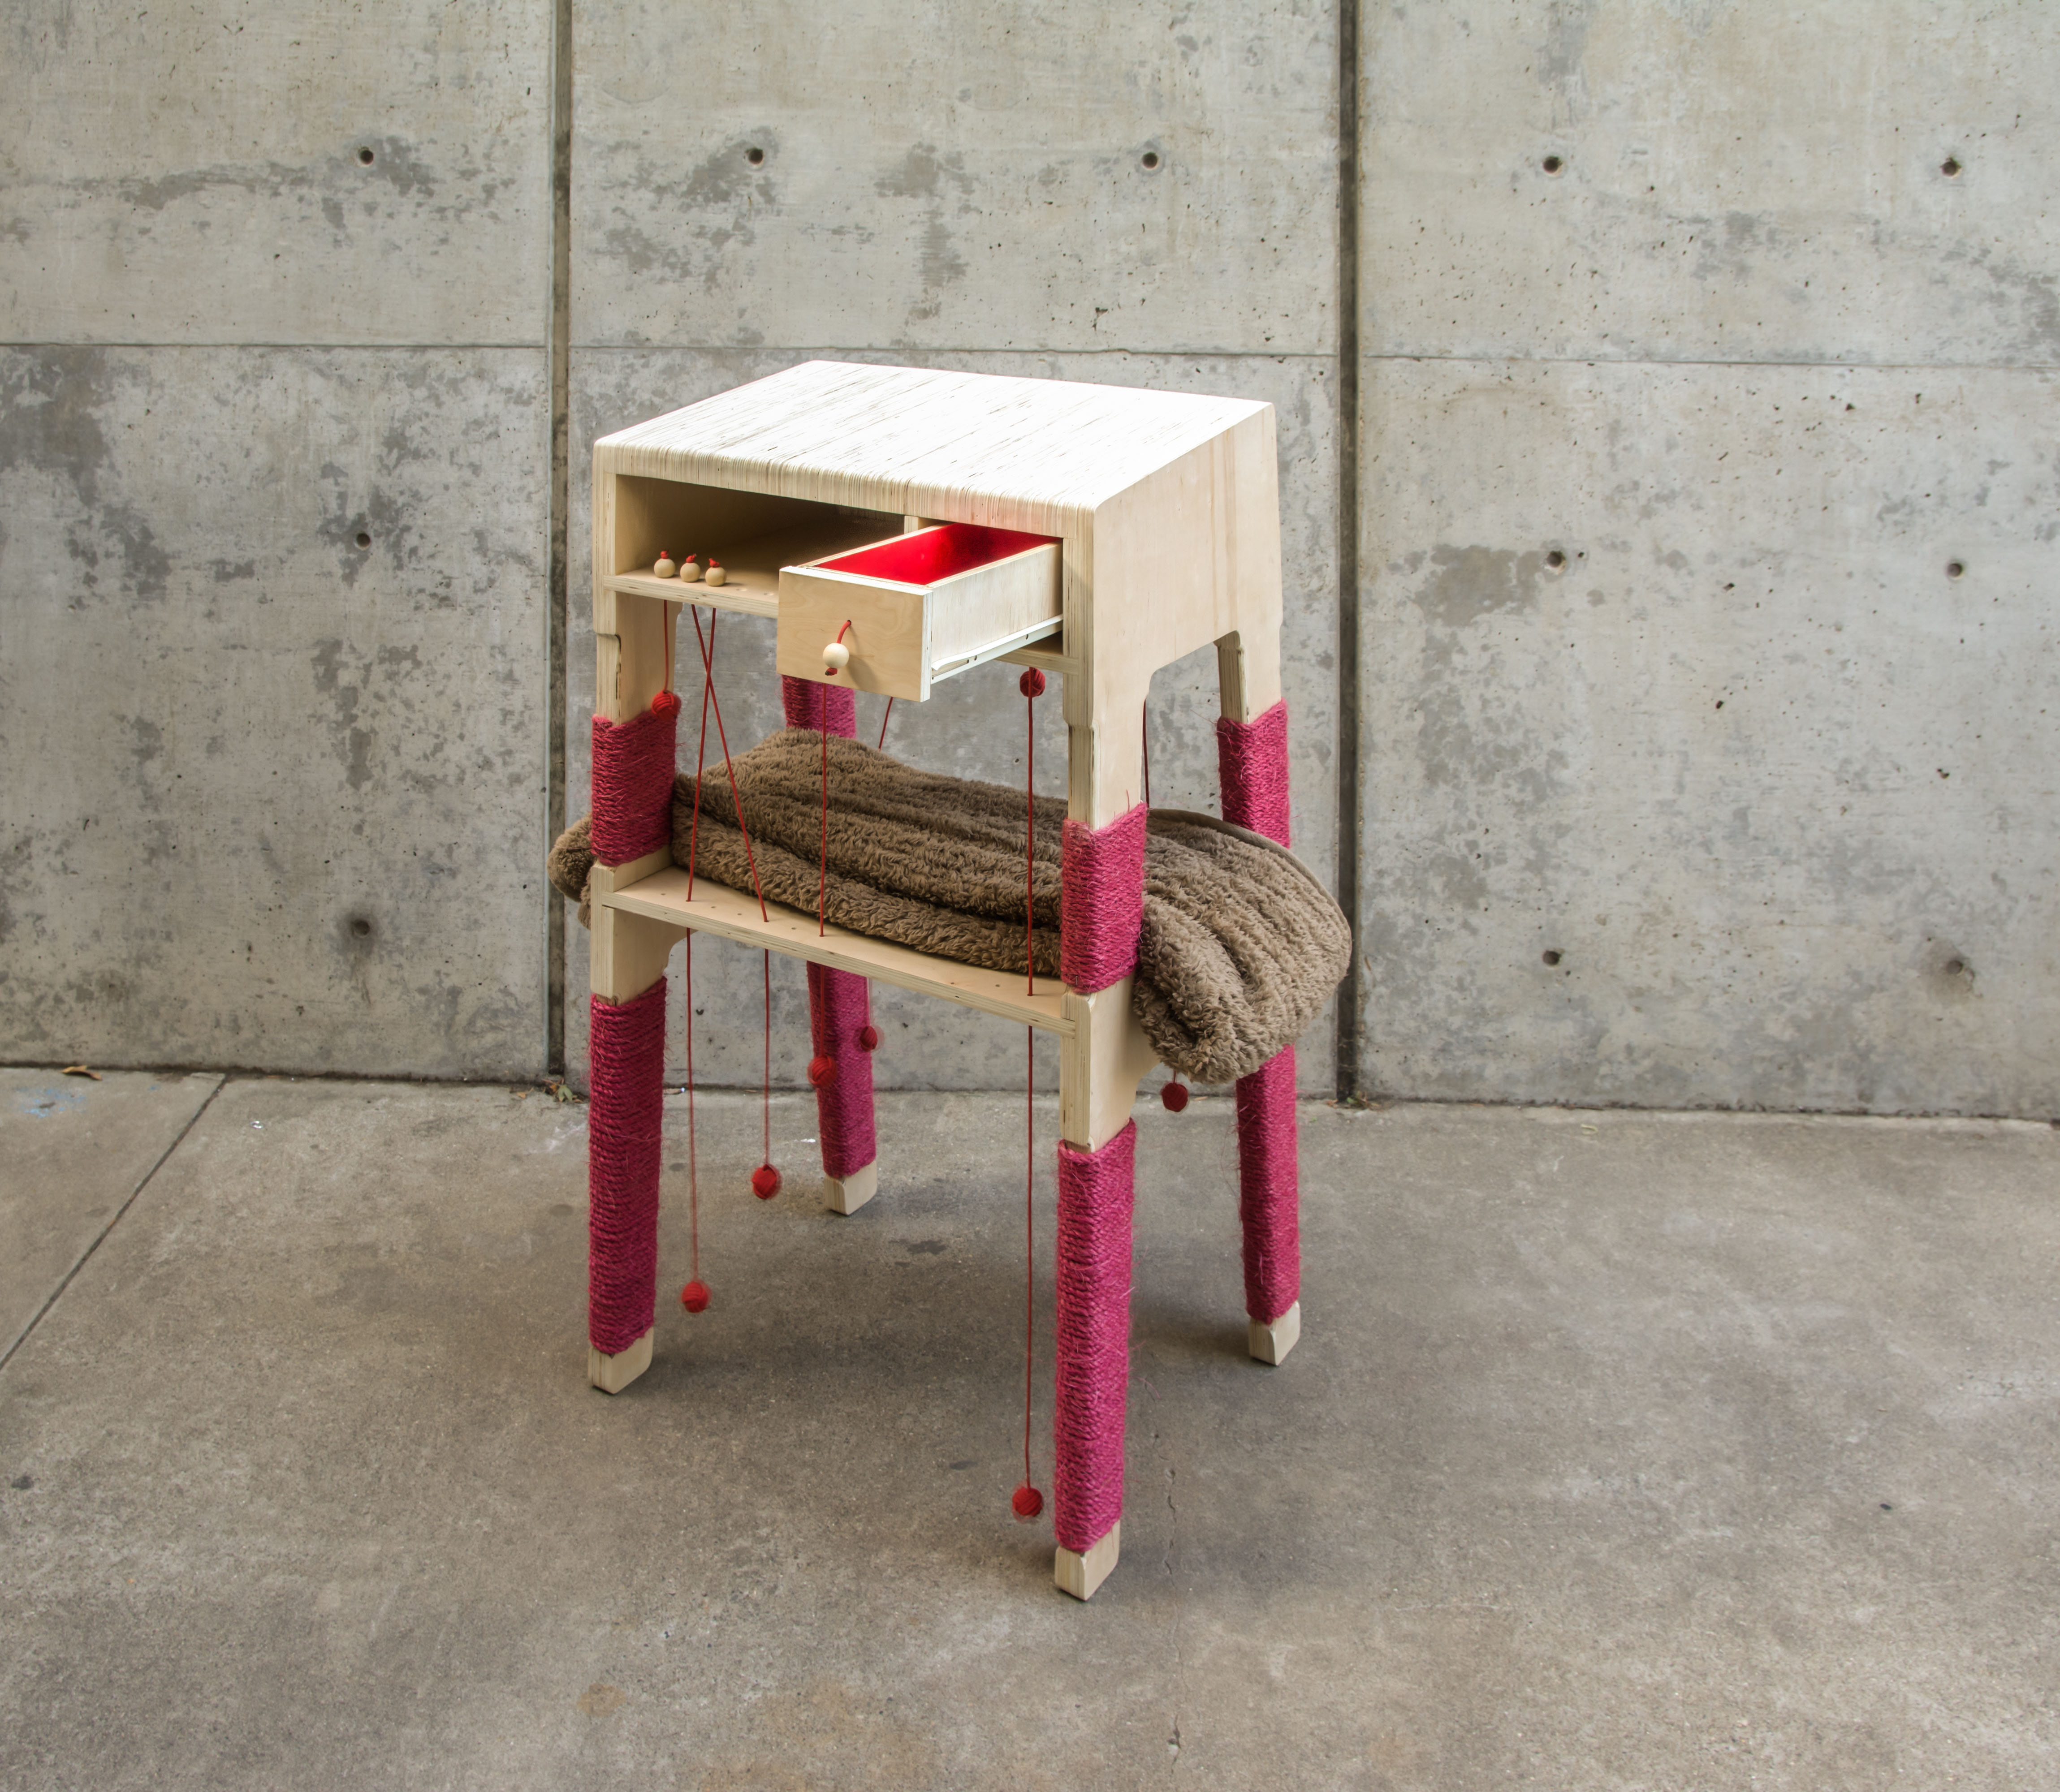 wooden side table by Suraj Reddy